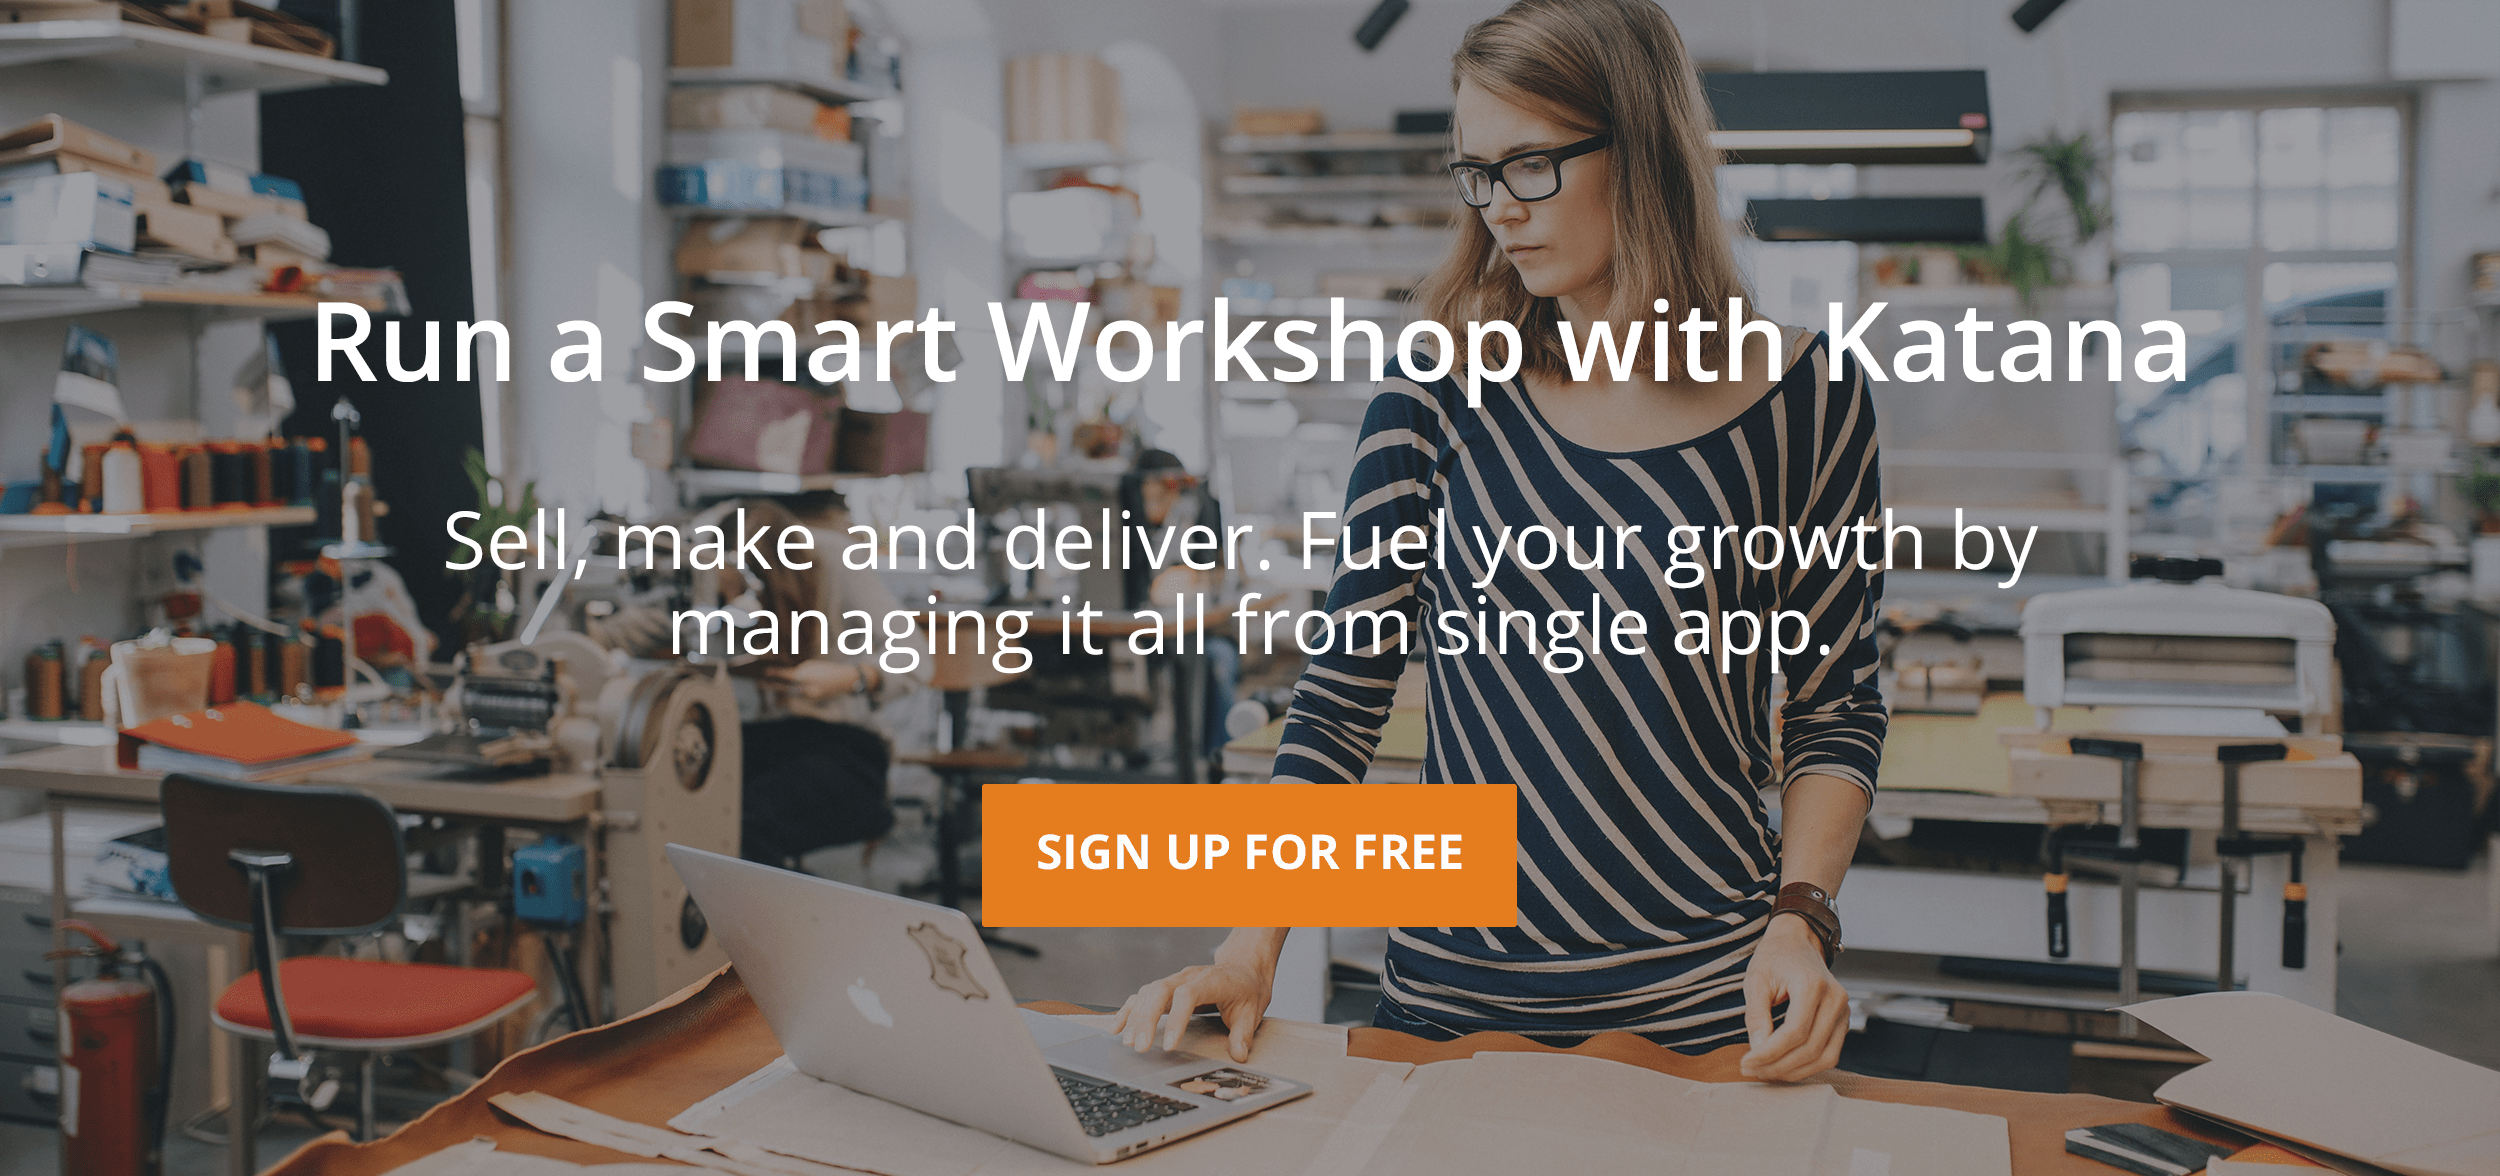 Raw materials inventory management software. Run a Smart Workshop with Katana.